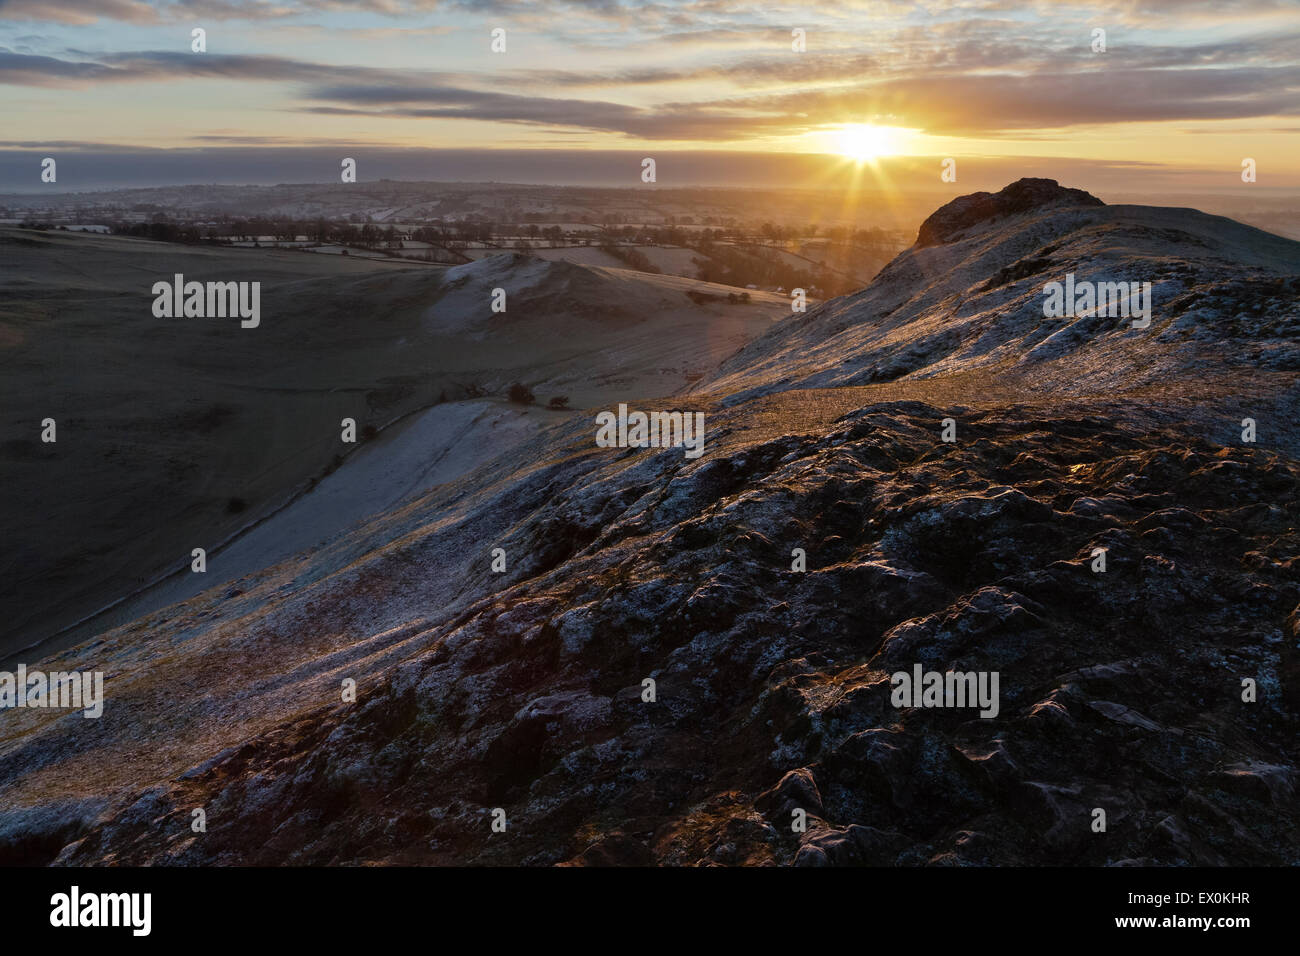 Sunrise from the summit of Thorpe Cloud, Peak District National Park, Derbyshire, England Stock Photo